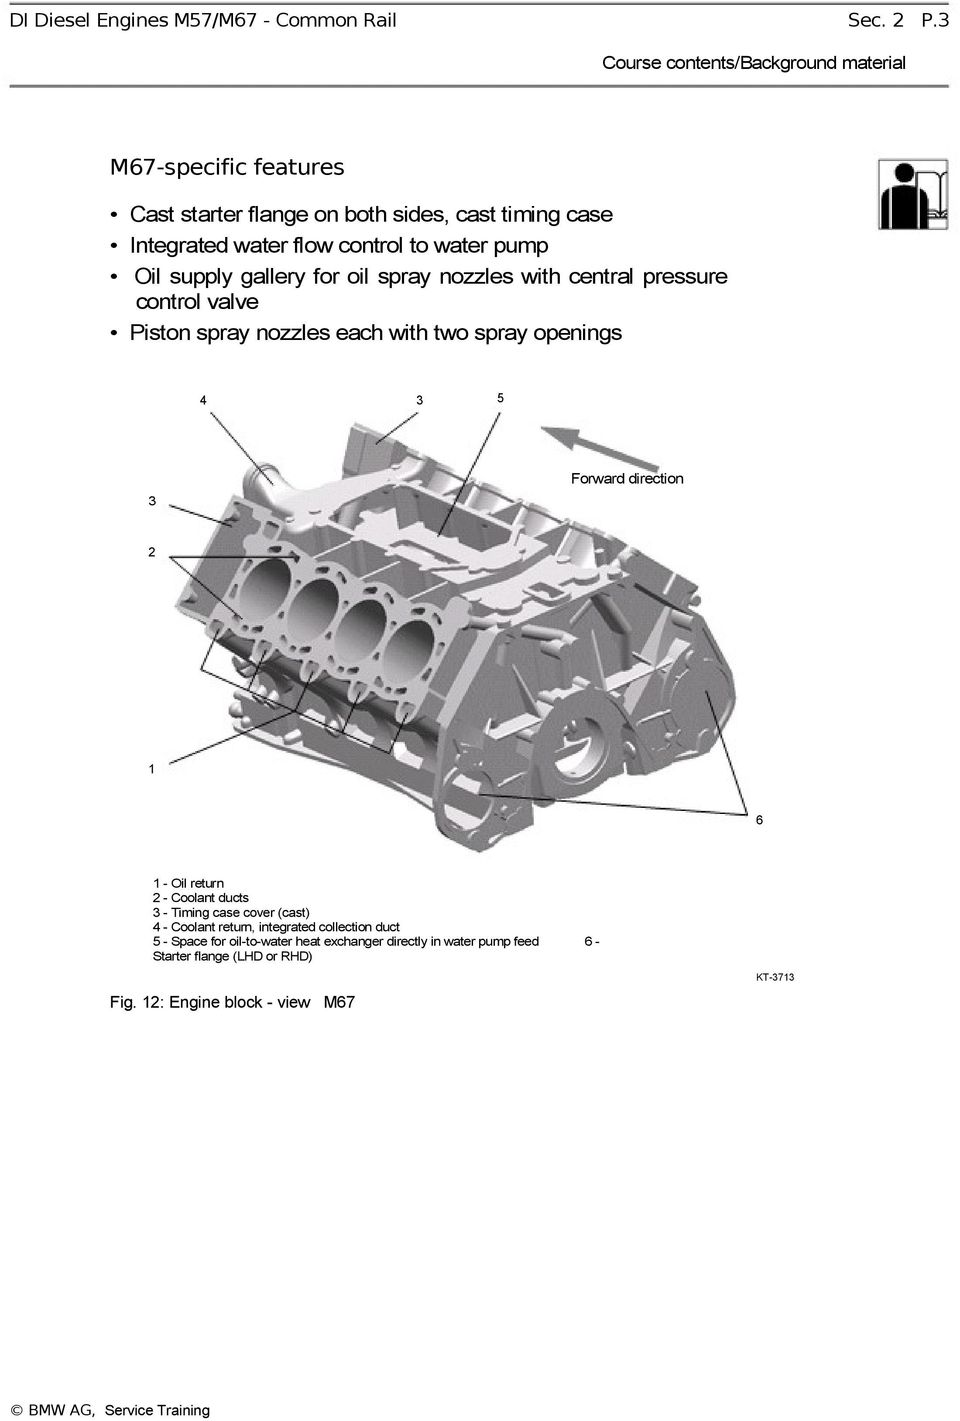 Diesel Engines M57 M67 Common Rail Pdf Diagram Of Auto Engine Piston Gallery For Oil Spray Nozzles With Central Pressure Control Valve Each Two